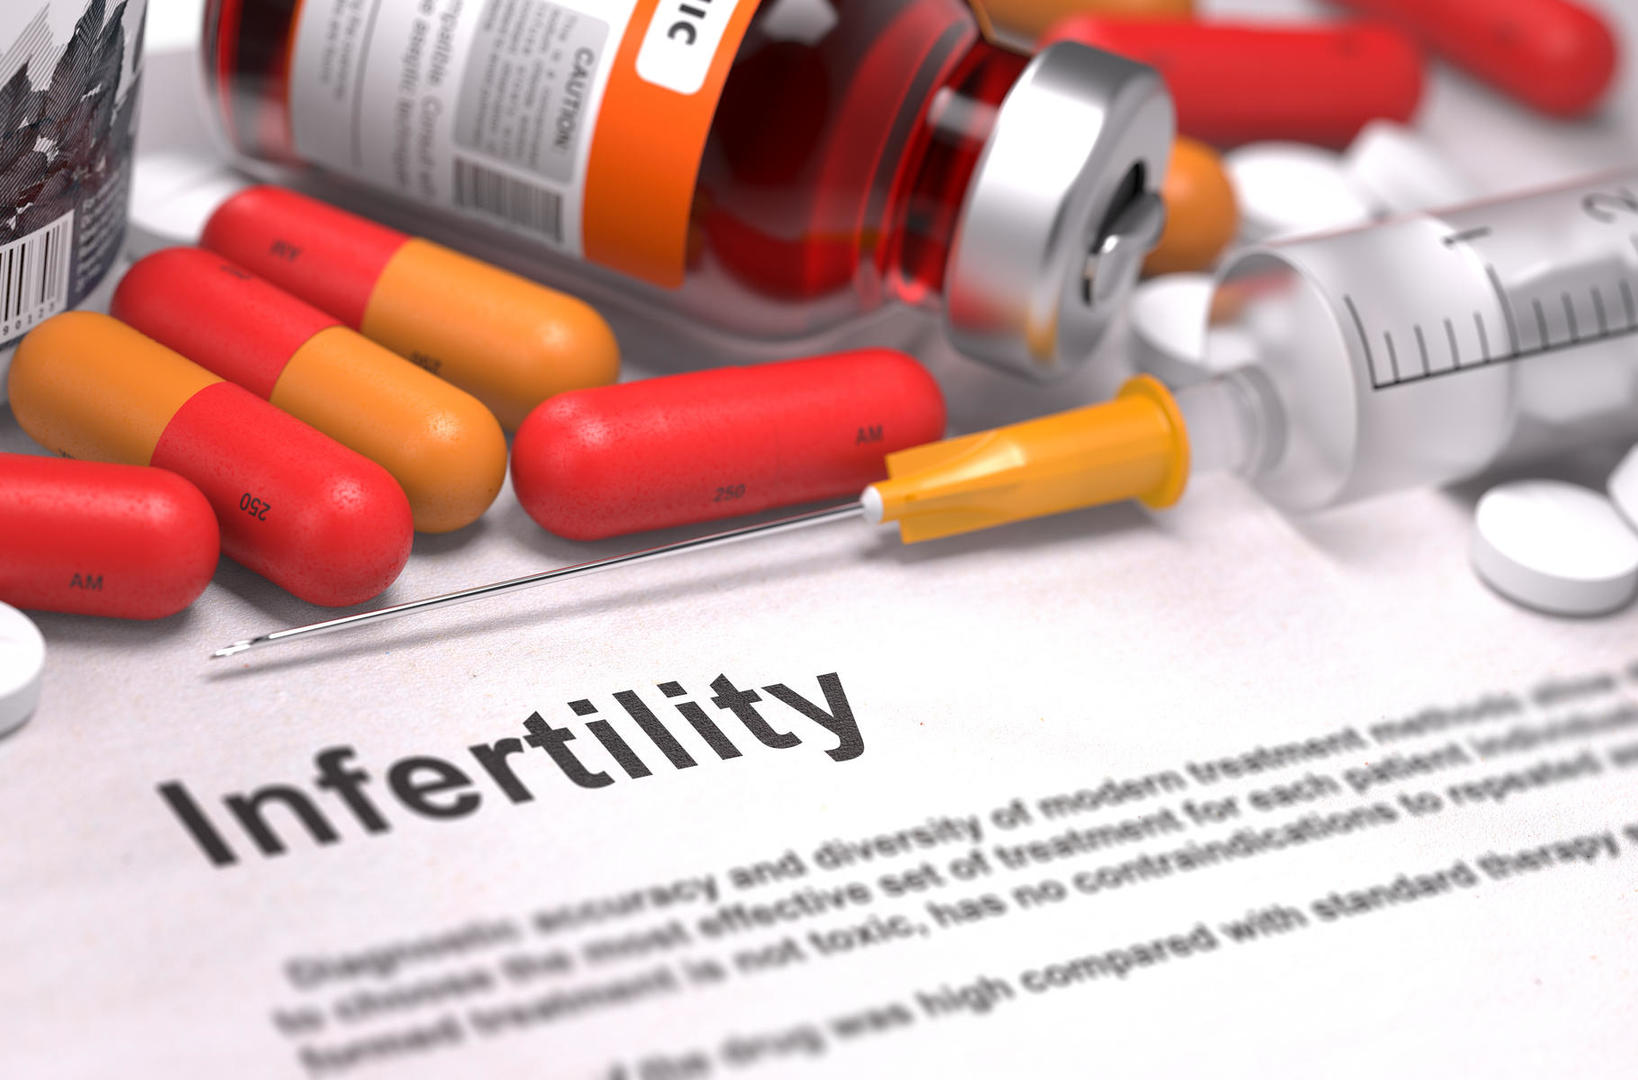 Did you know that I help people with fertility and reproductive issues?